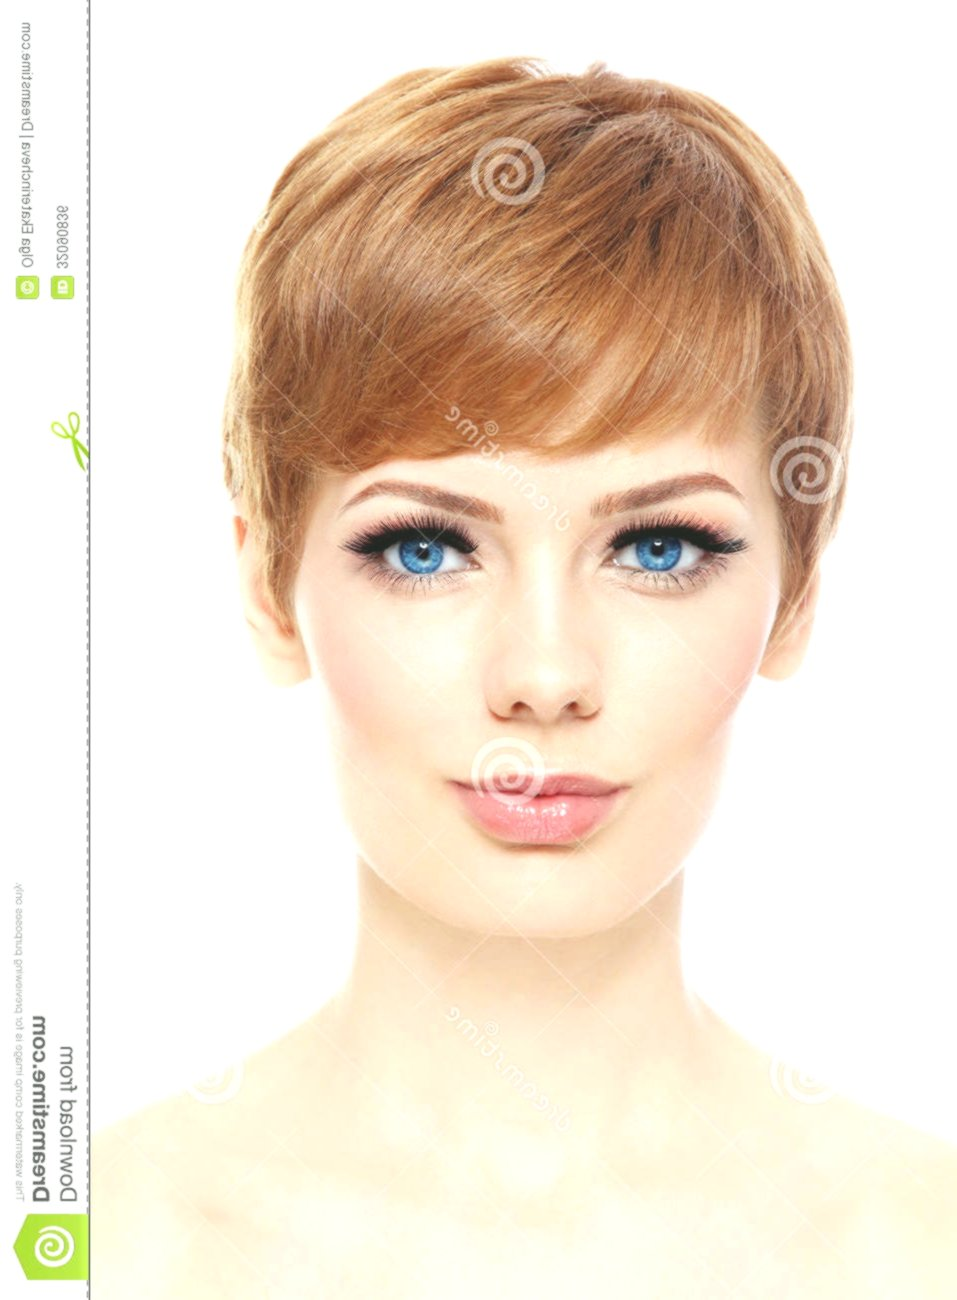 lovely short haircut photo picture - Awesome Short Haircut Pattern